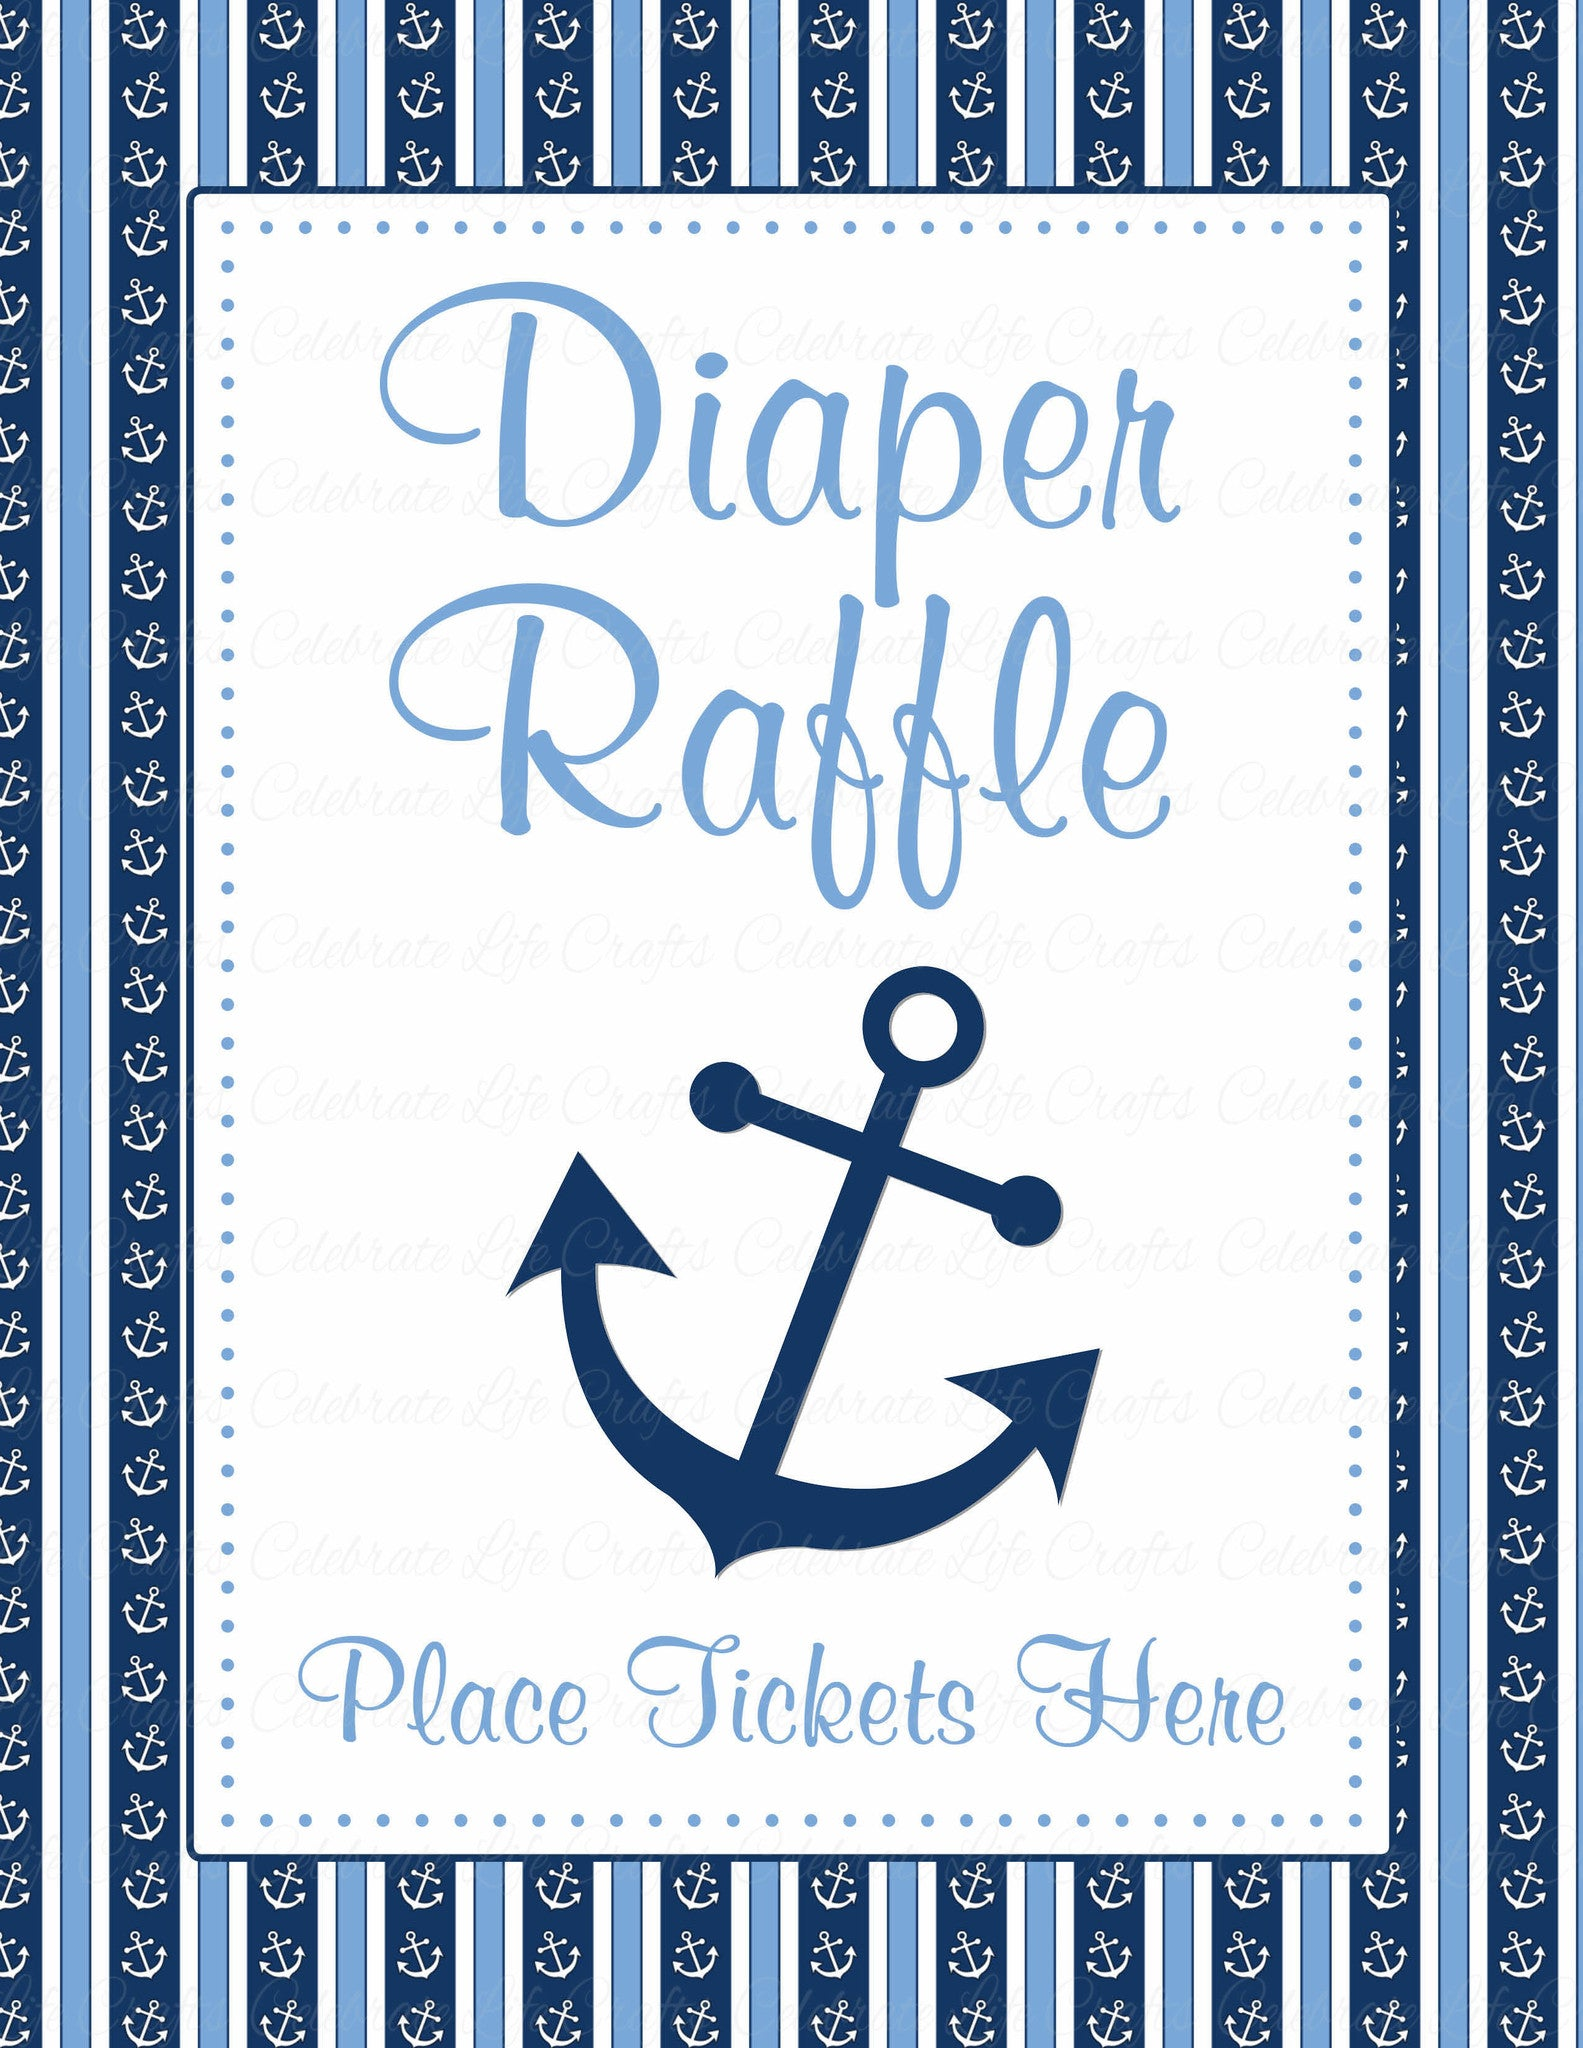 photo regarding Tickets Printable named Diaper Raffle Tickets - Printable Obtain - Army Blue Youngster Shower Invitation Inserts - B15002